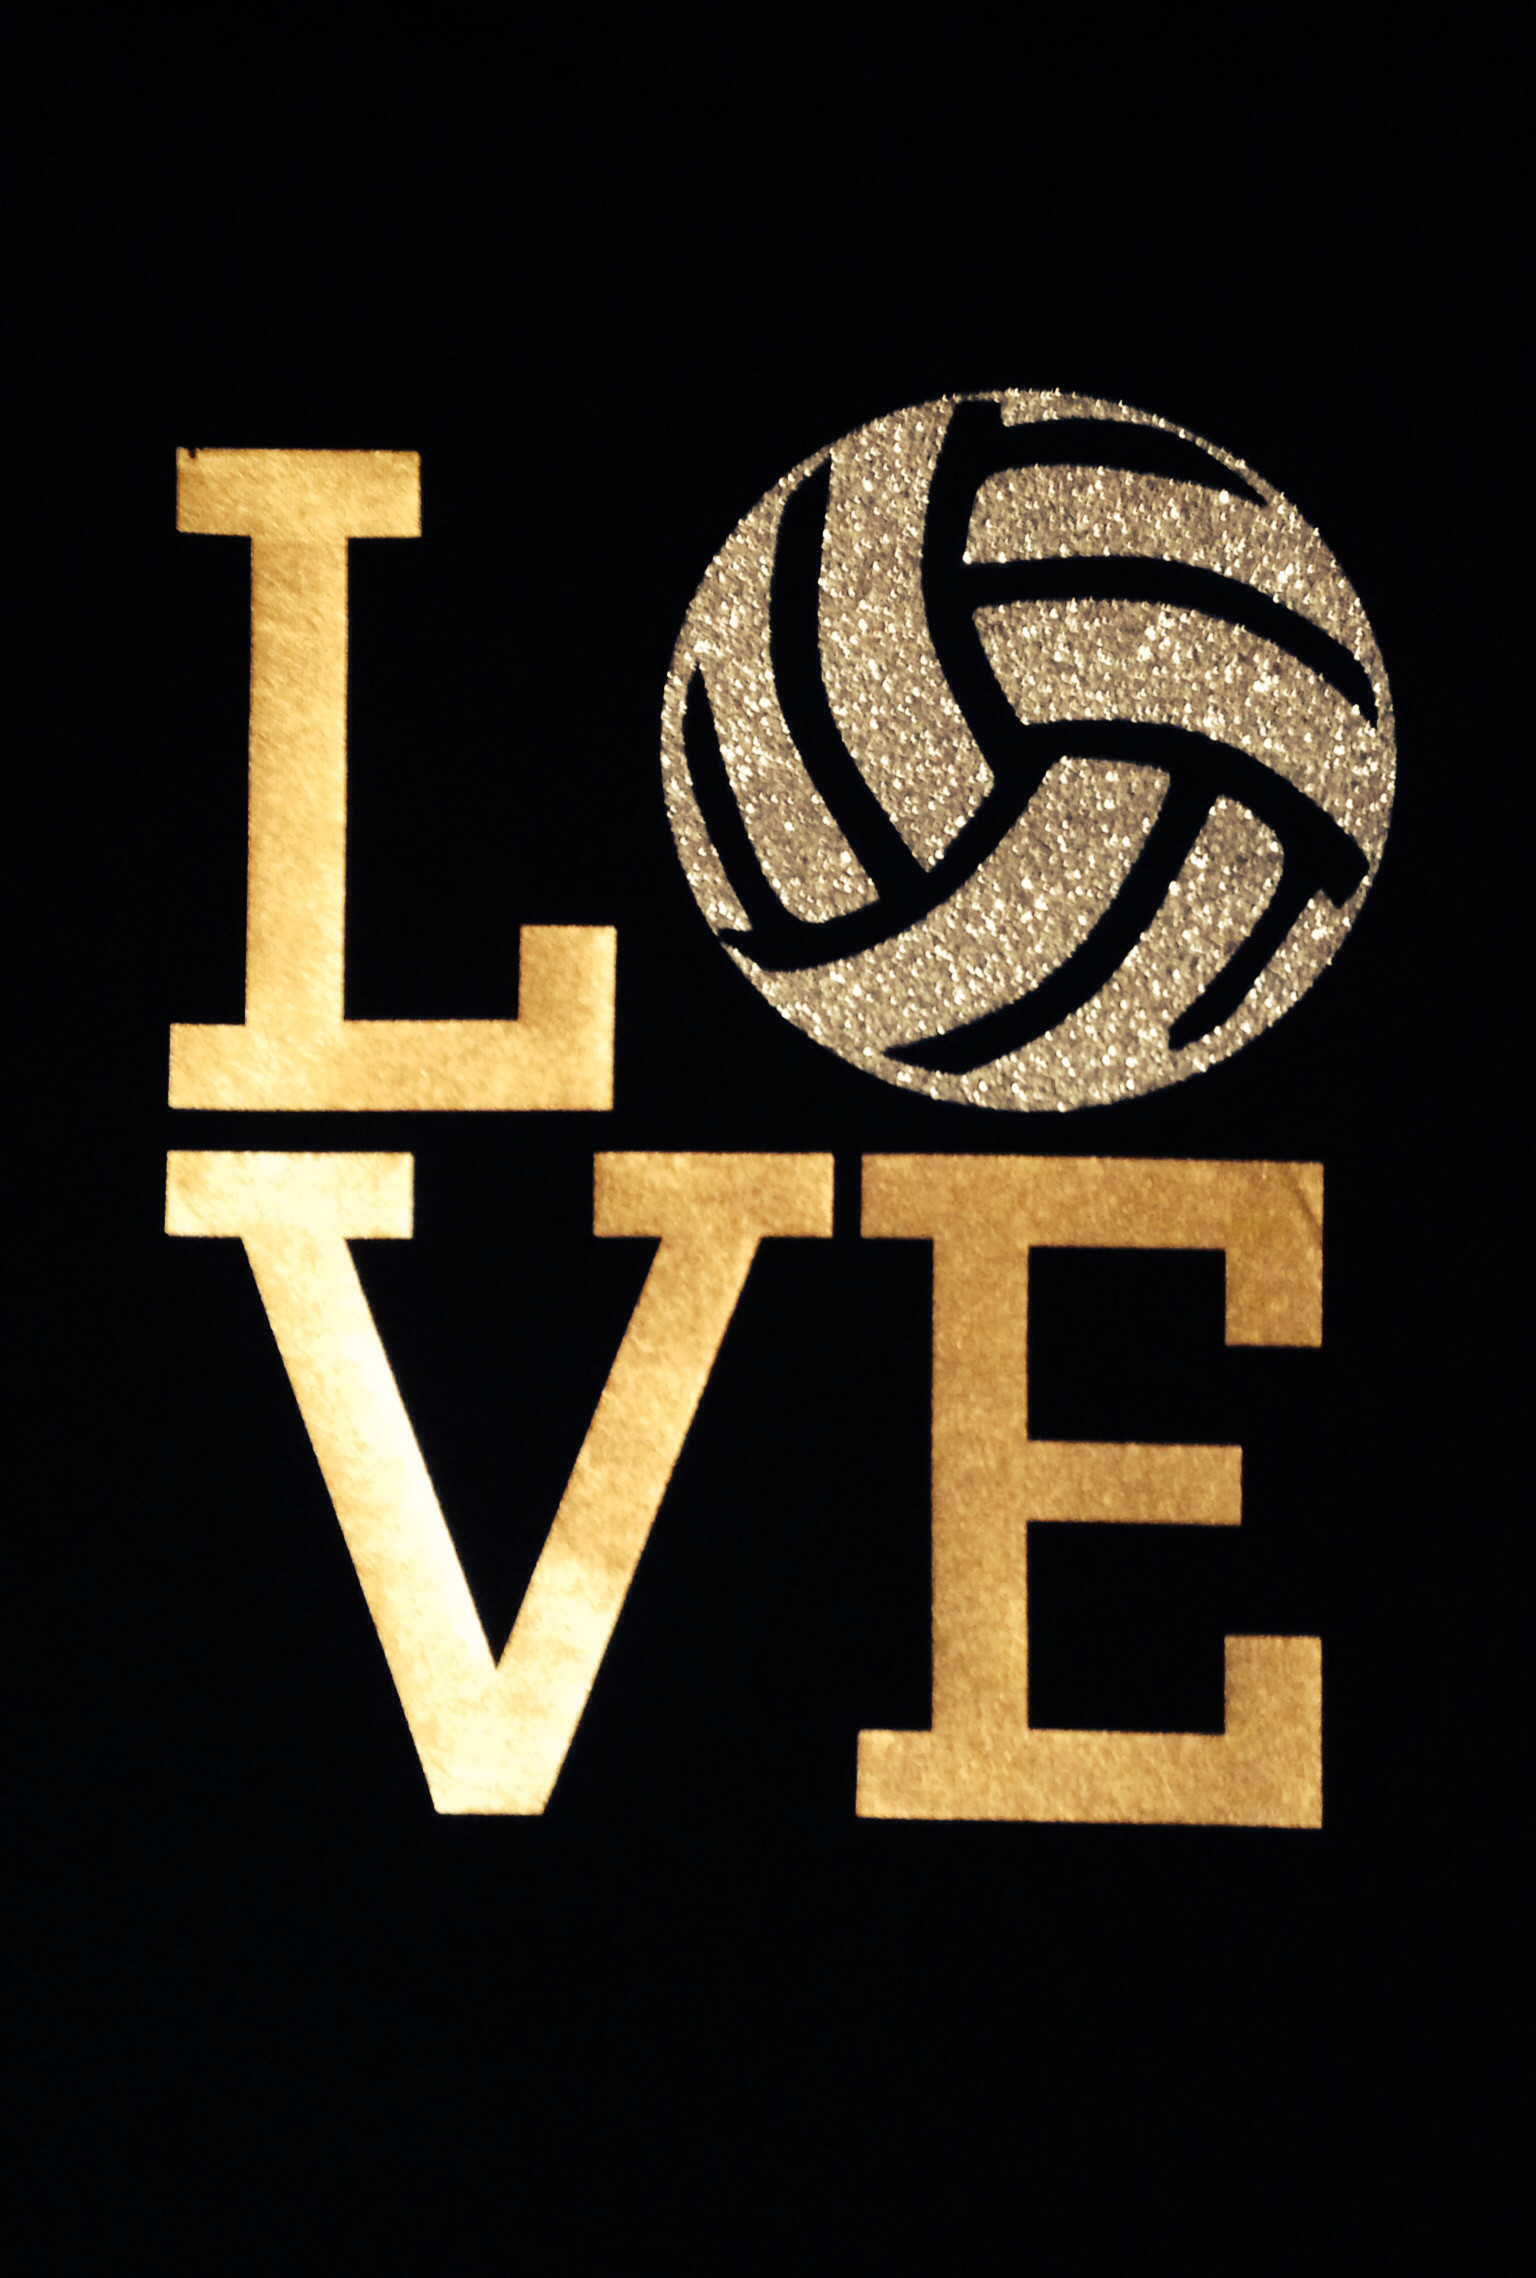 ❤️Jesus Christ, Family, Friends, and Volleyball are what I live for!